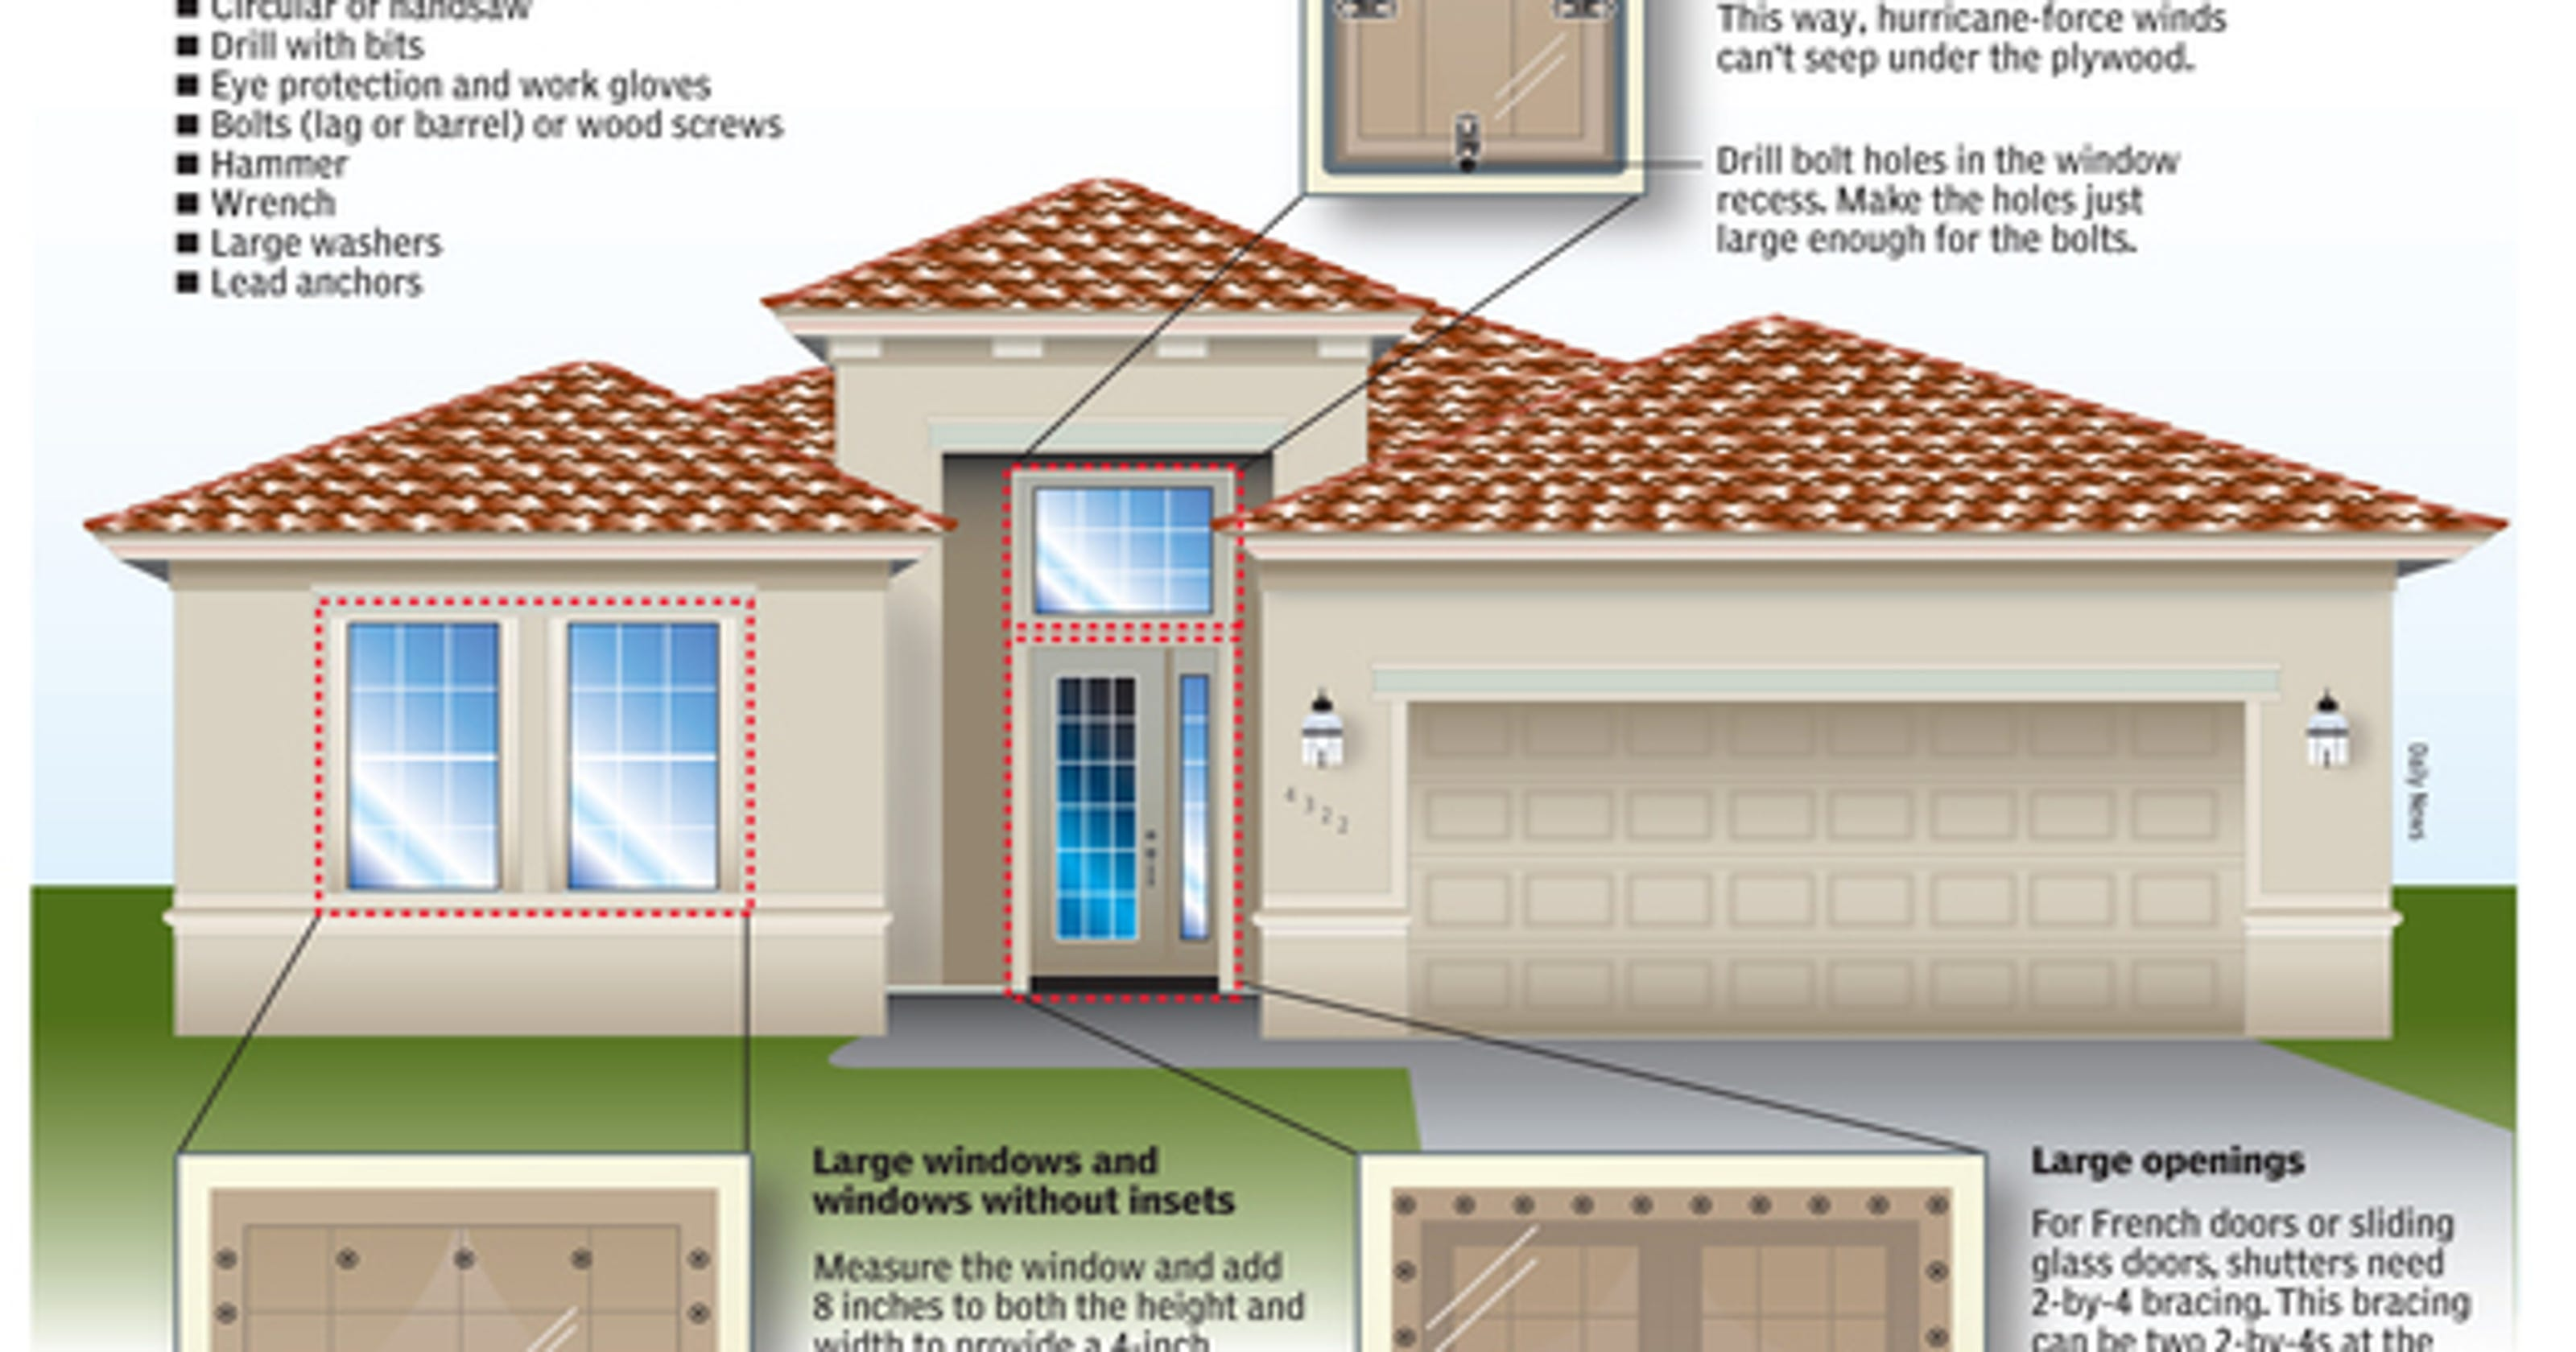 Hurricane Guide Protecting Your Windows The Various Ways